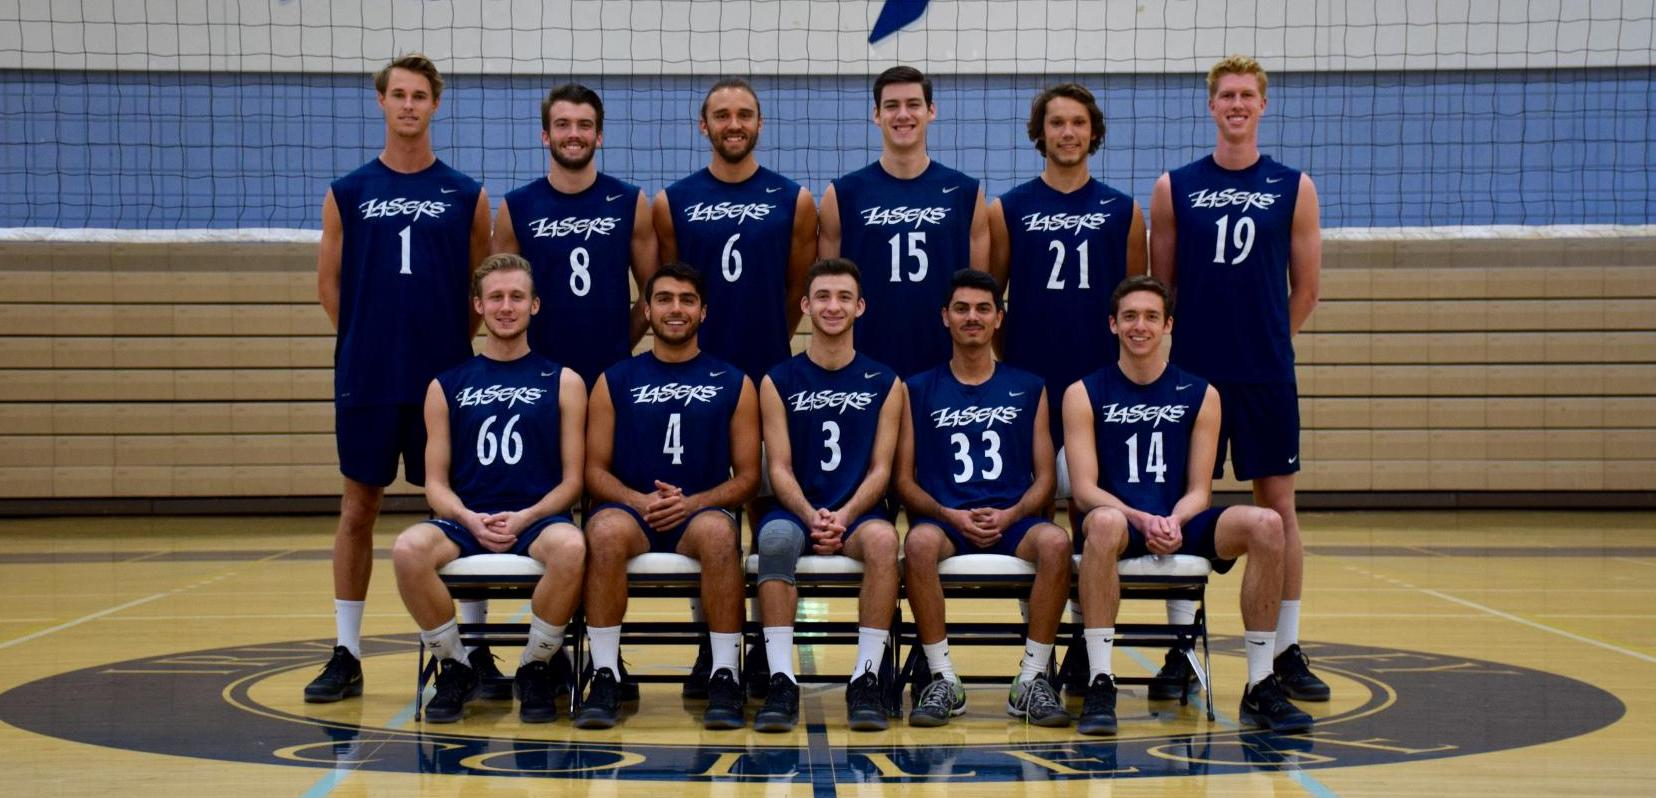 Men's volleyball team falls to El Camino in 2016 opener